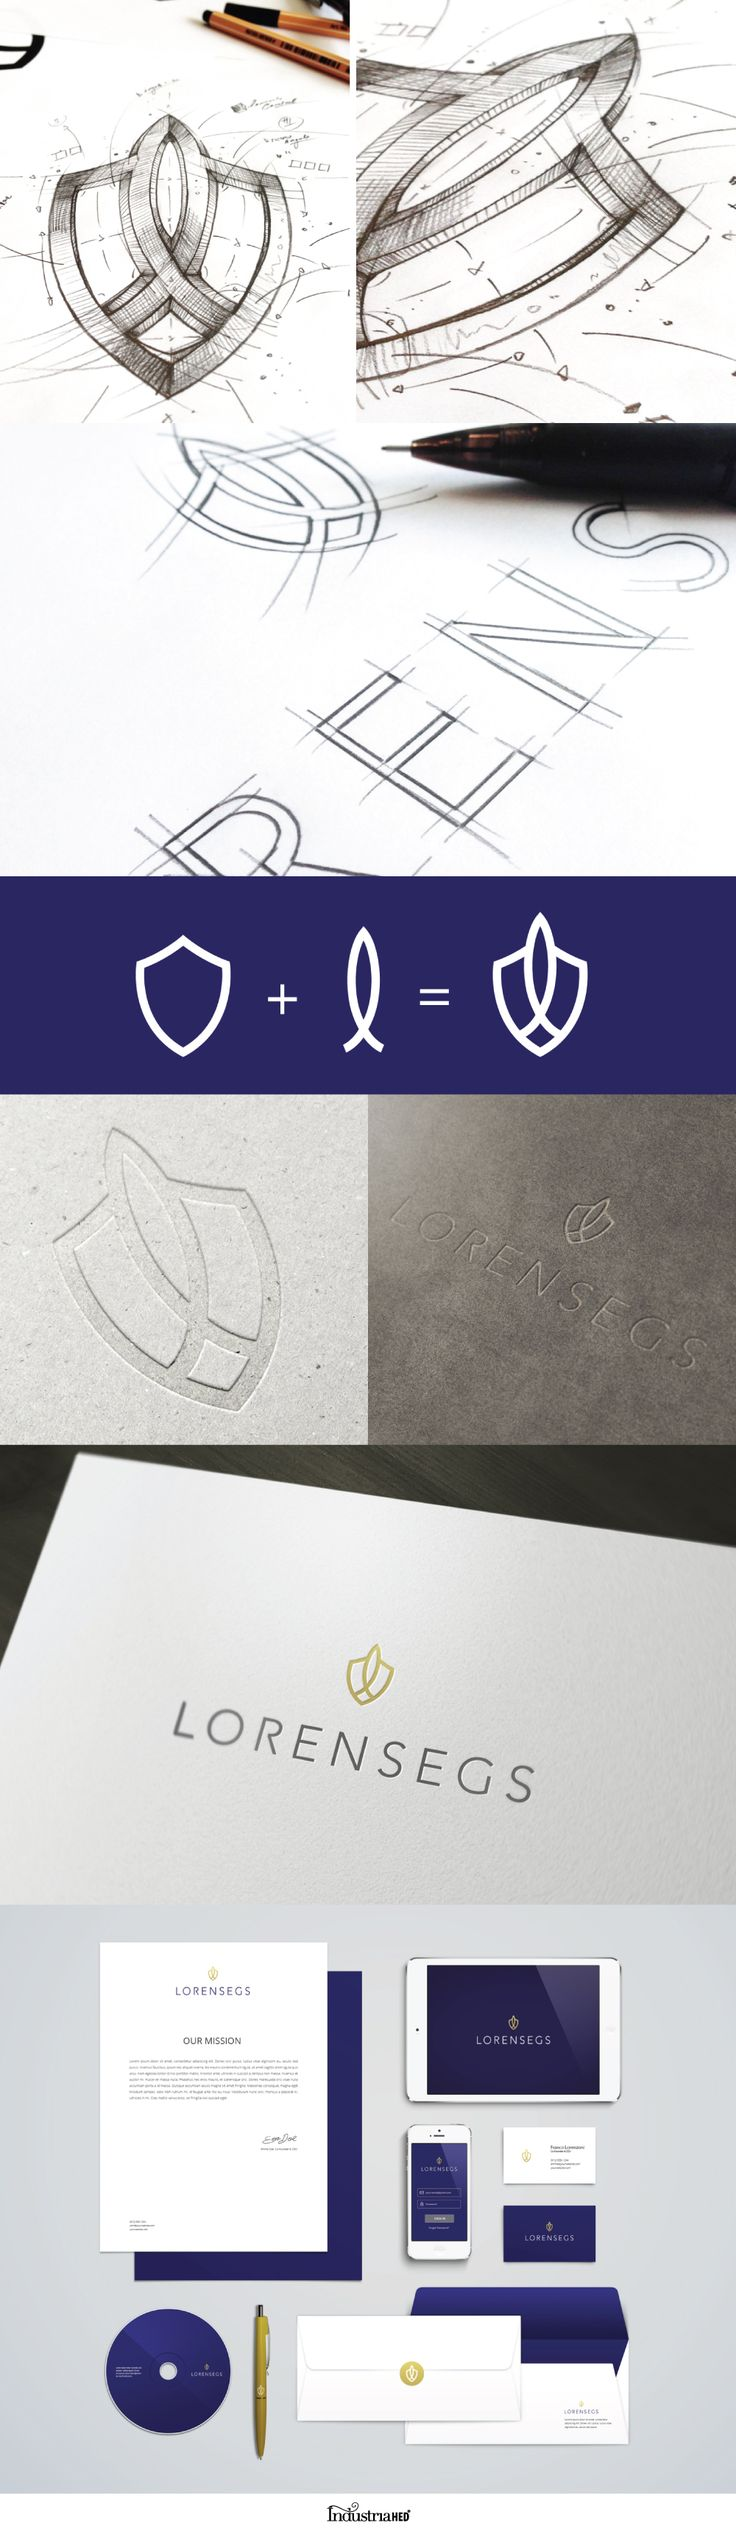 LORENSEGS // Insurance Company Identity by IndustriaHED (via Behance.net). Seal/emblem symbol logo. Blue, white, and gold color scheme.